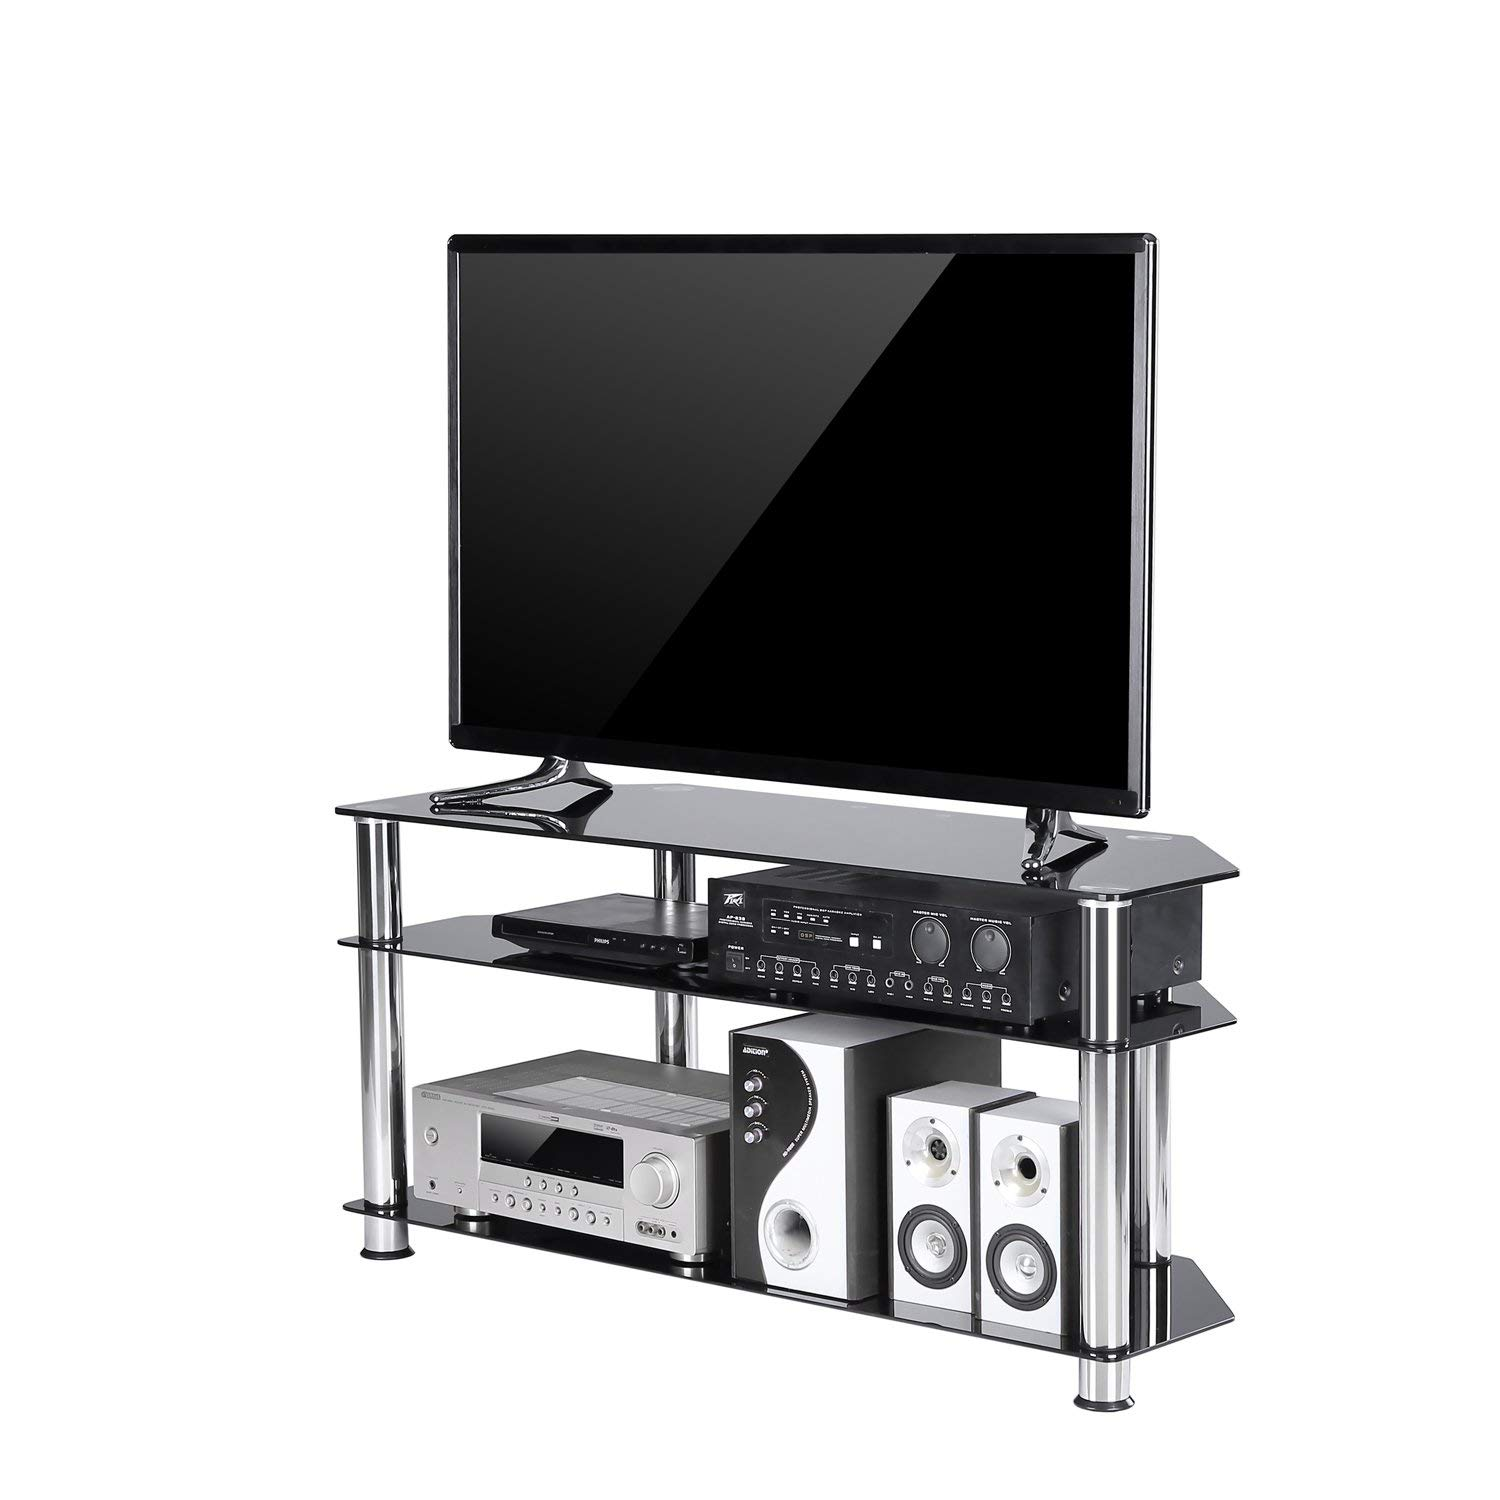 f3932655a95d Get Quotations · TAVR Black Tempered Glass Corner TV Stand Cable Management  Suit for up to 50 inch LCD